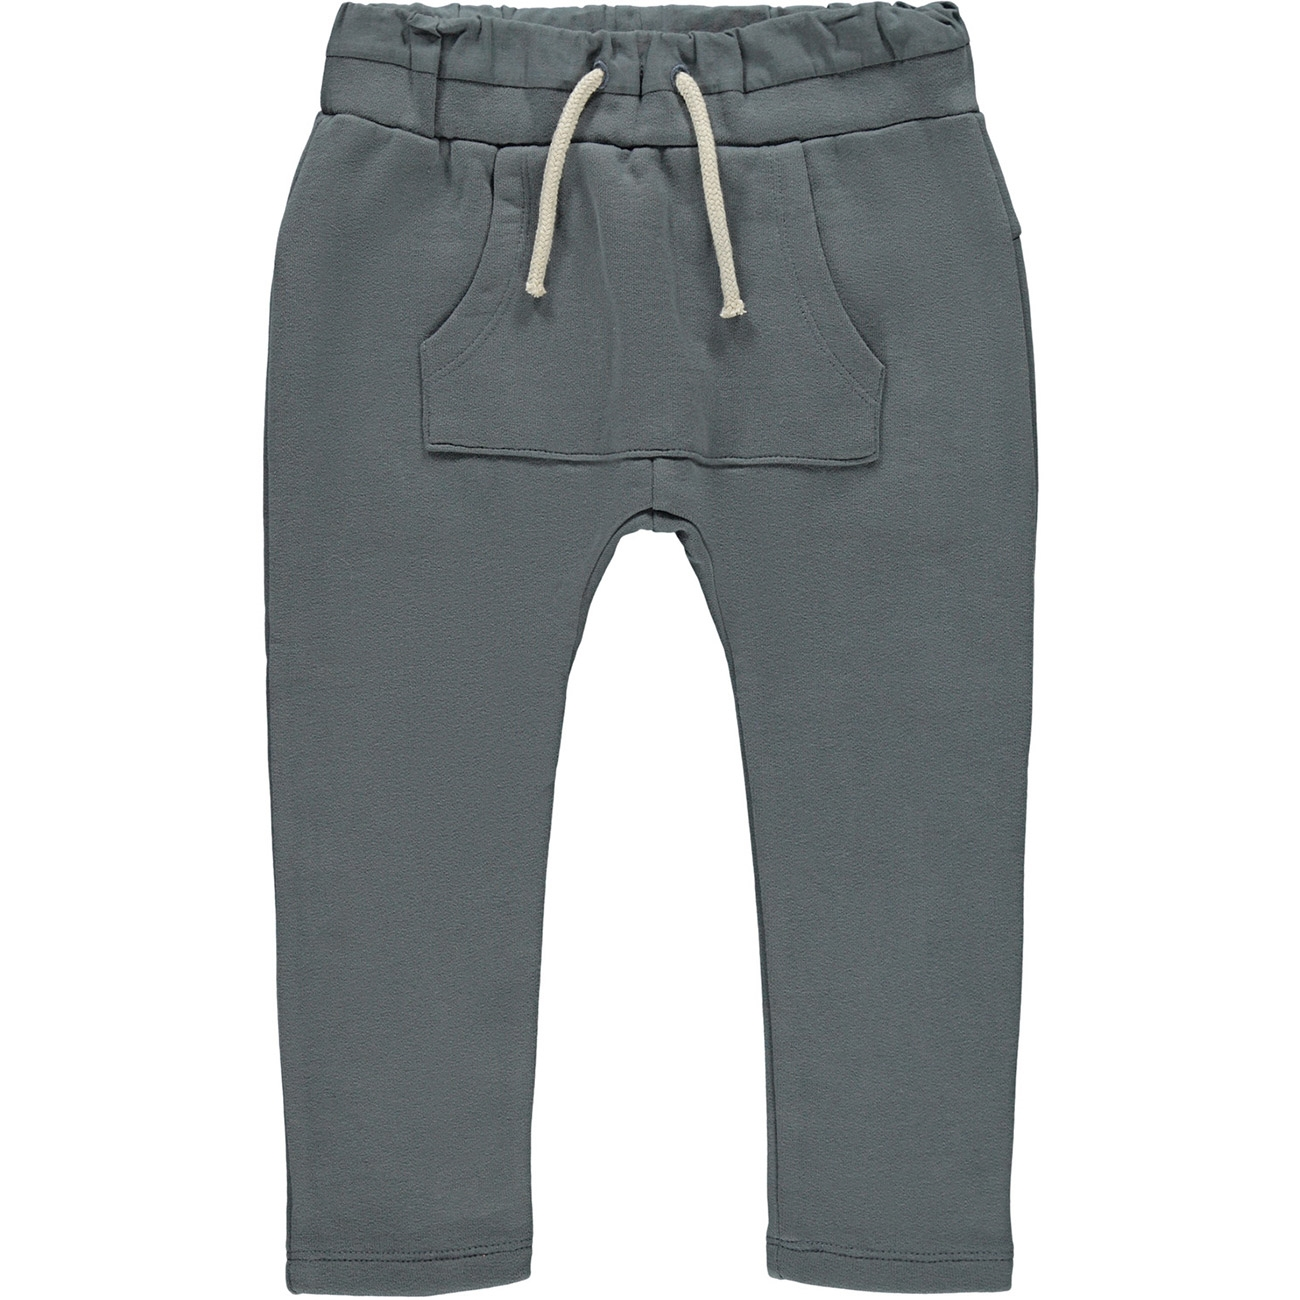 lil-atelier-garon-regular-slim-sweat-pants-bukser-turbulence-boy-dreng